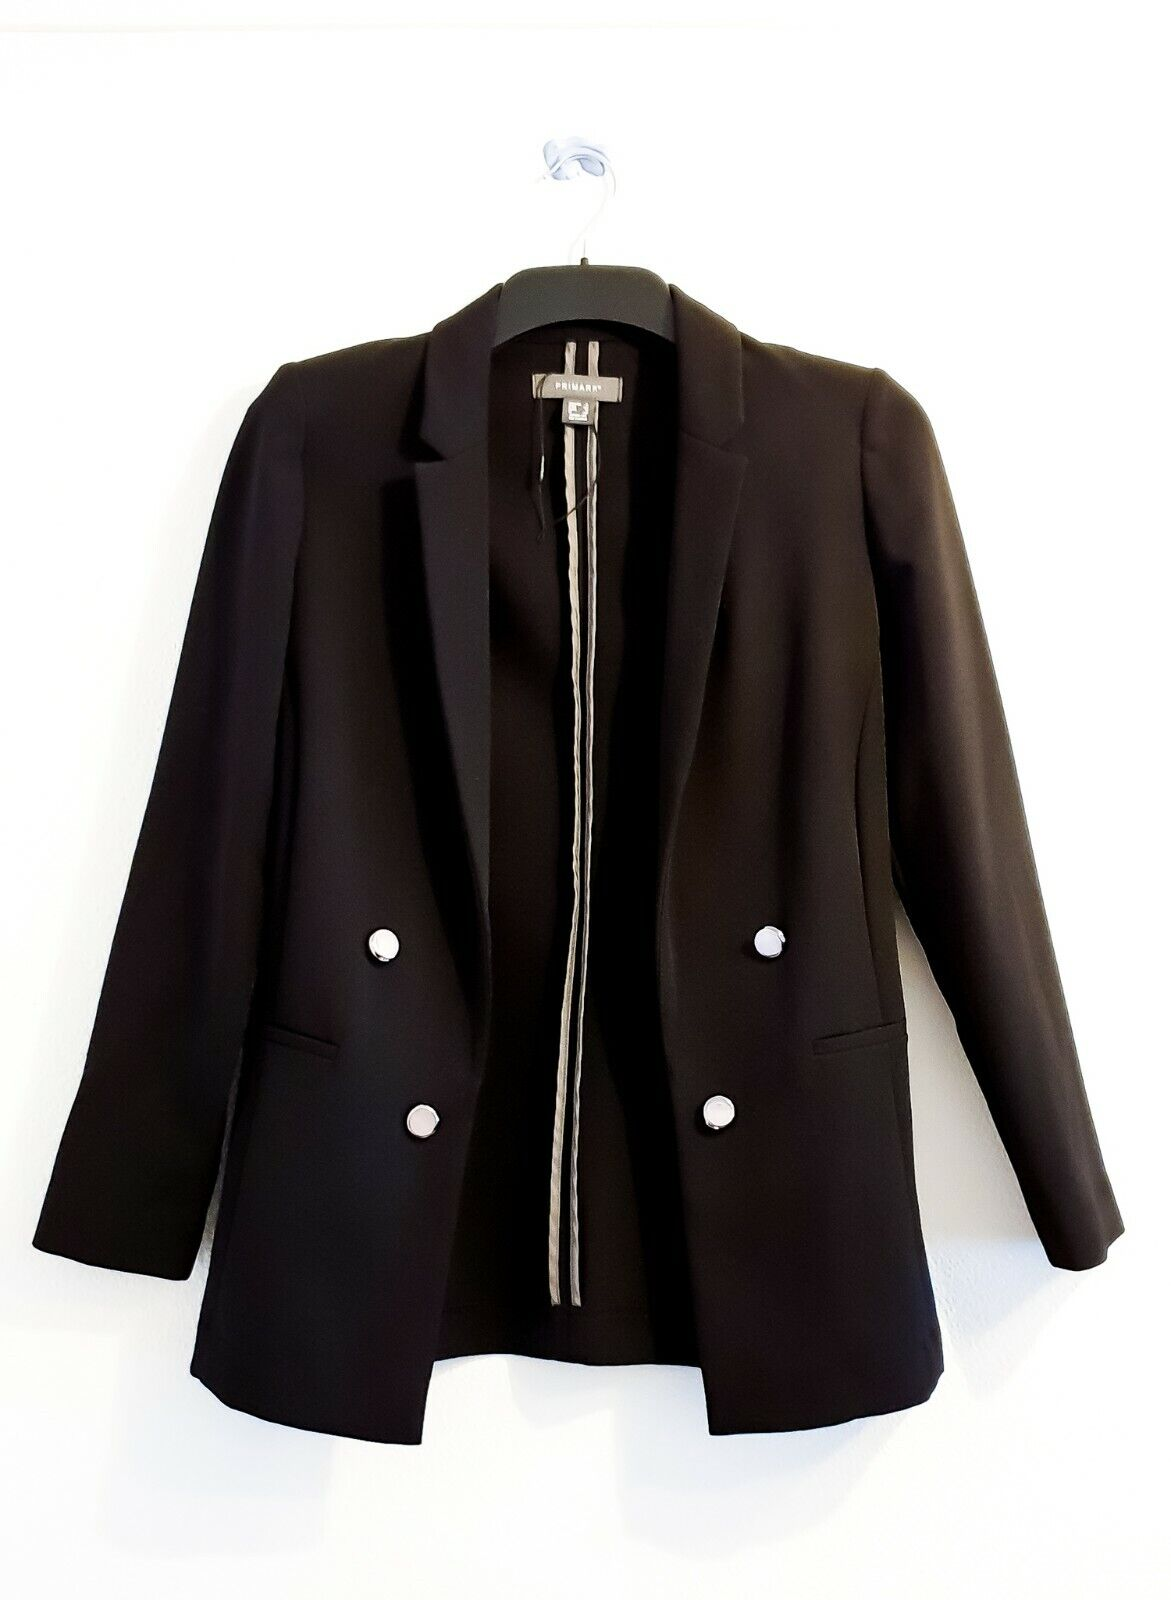 Primark Black Suit Jacket four Dark Silver Buttons Long Sleeve Women Size 4 Used